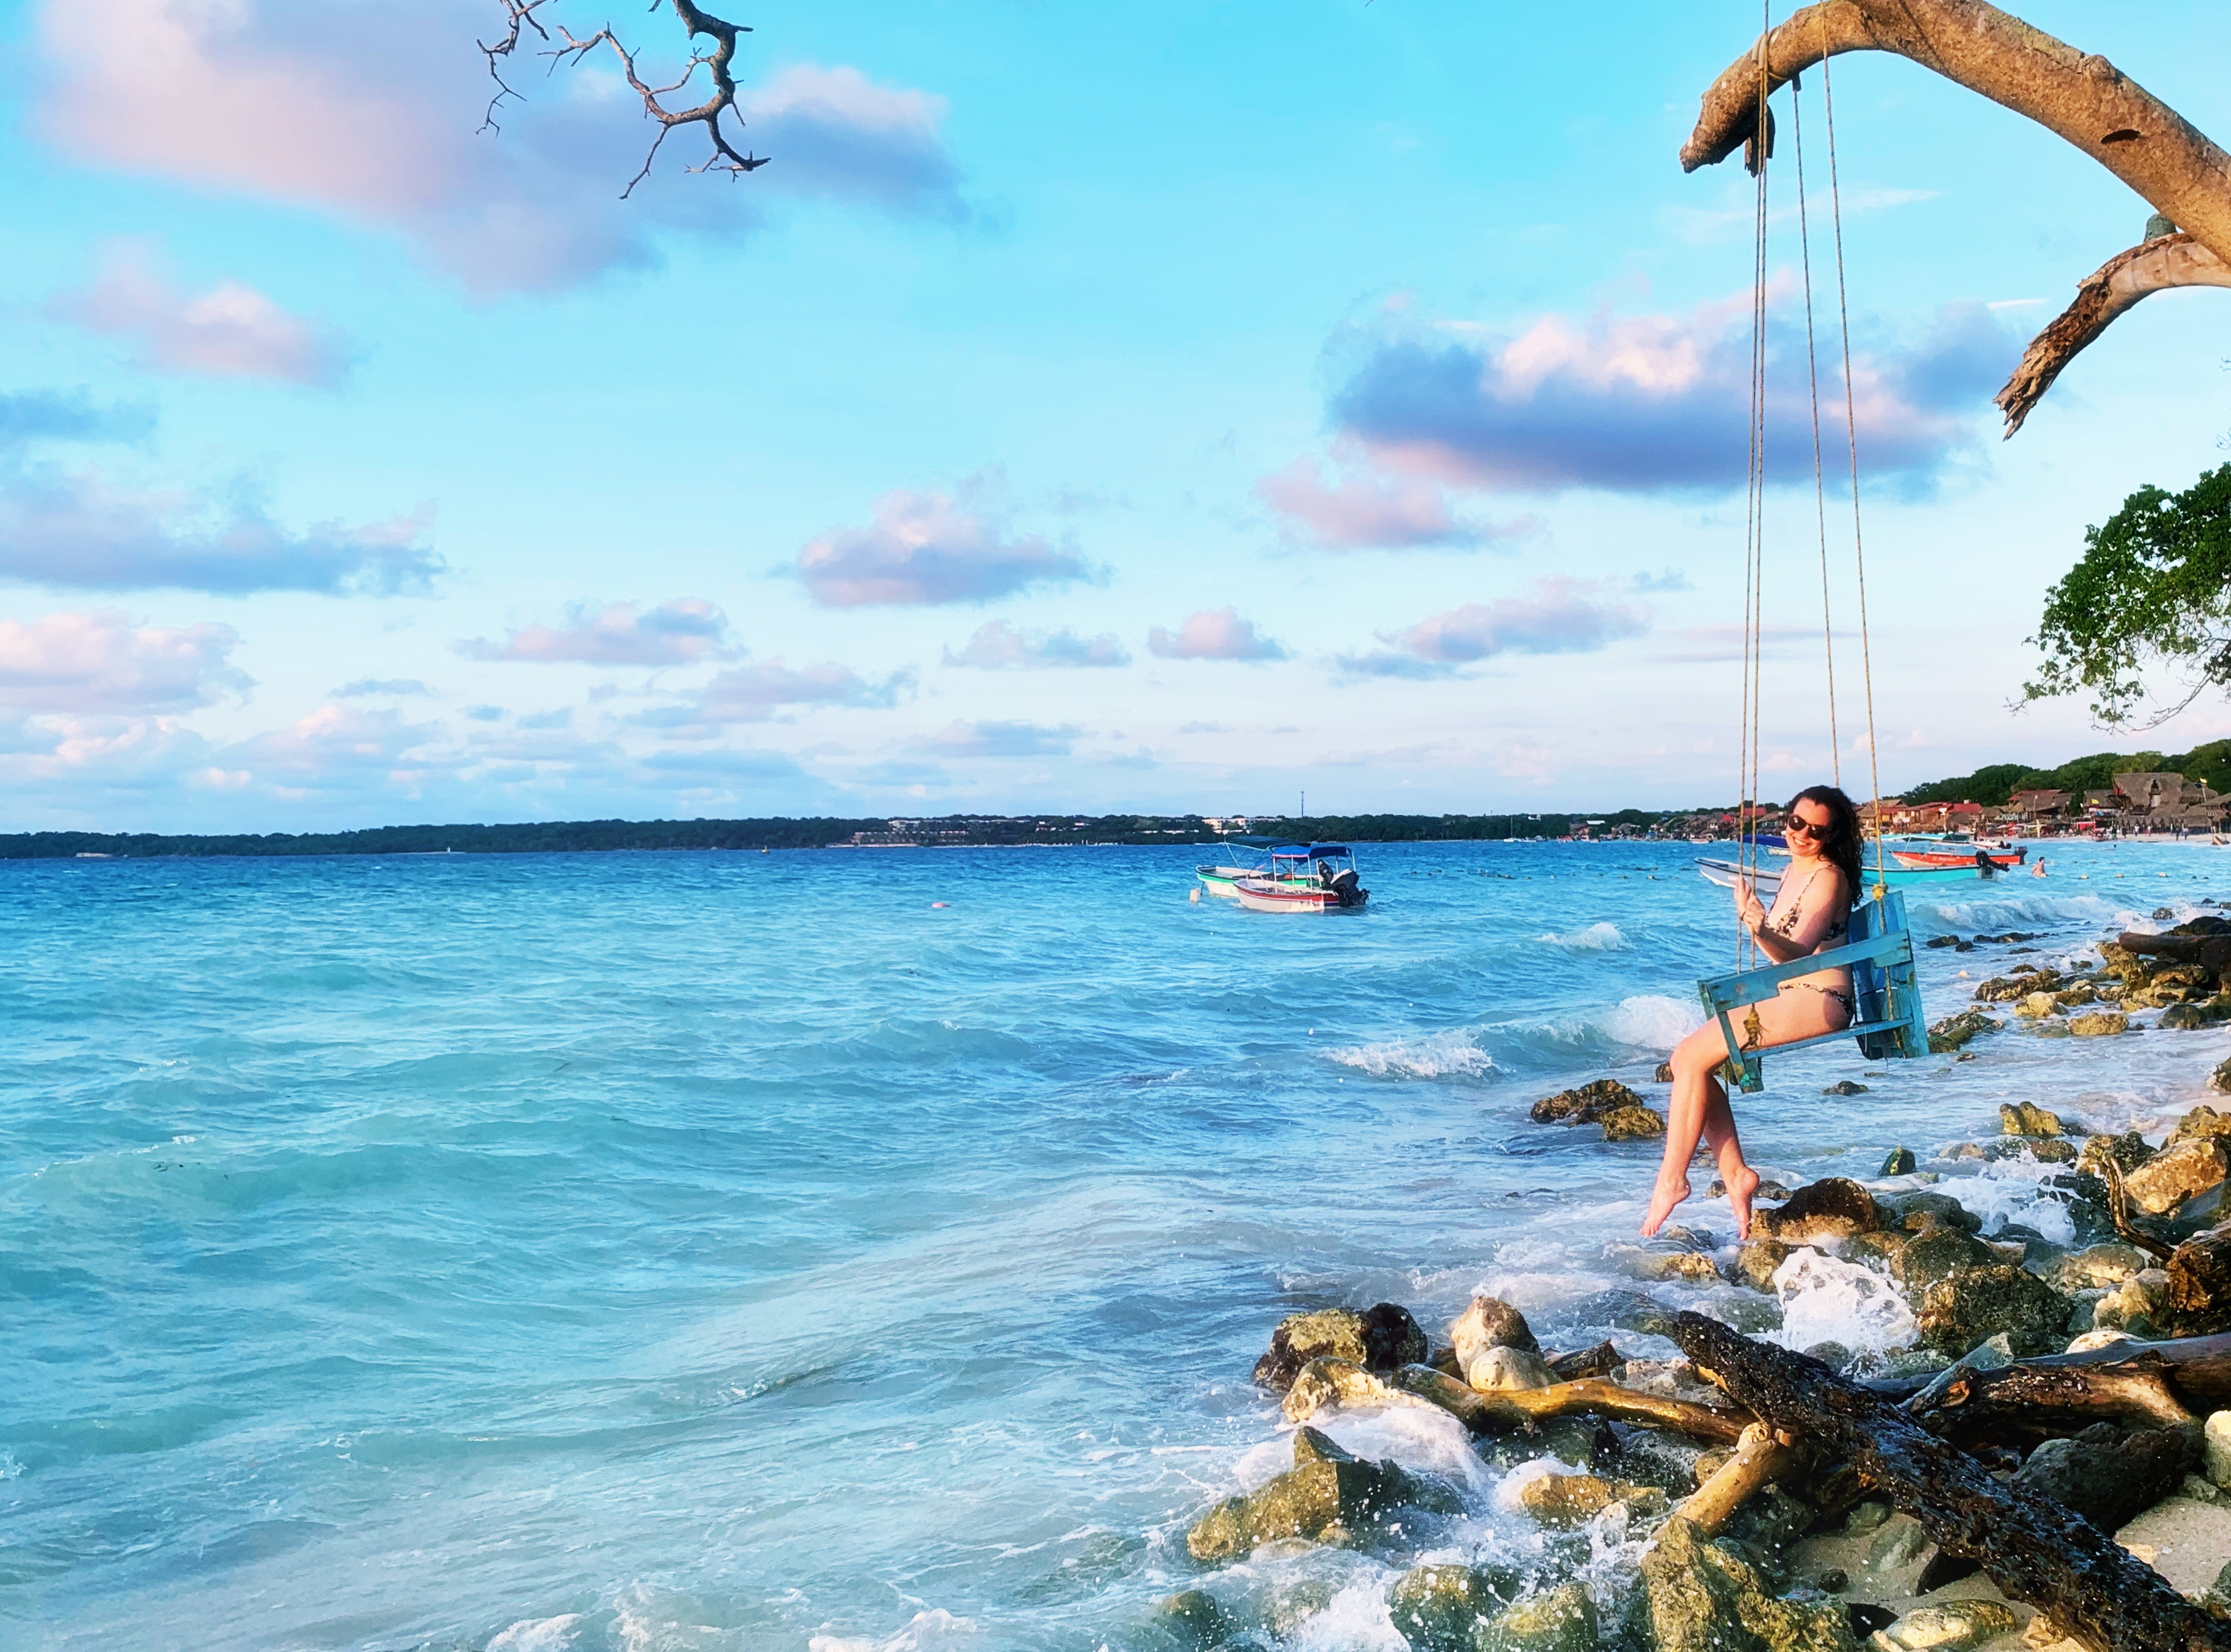 A girl swings on over the water in Playa Blanca, Colombia